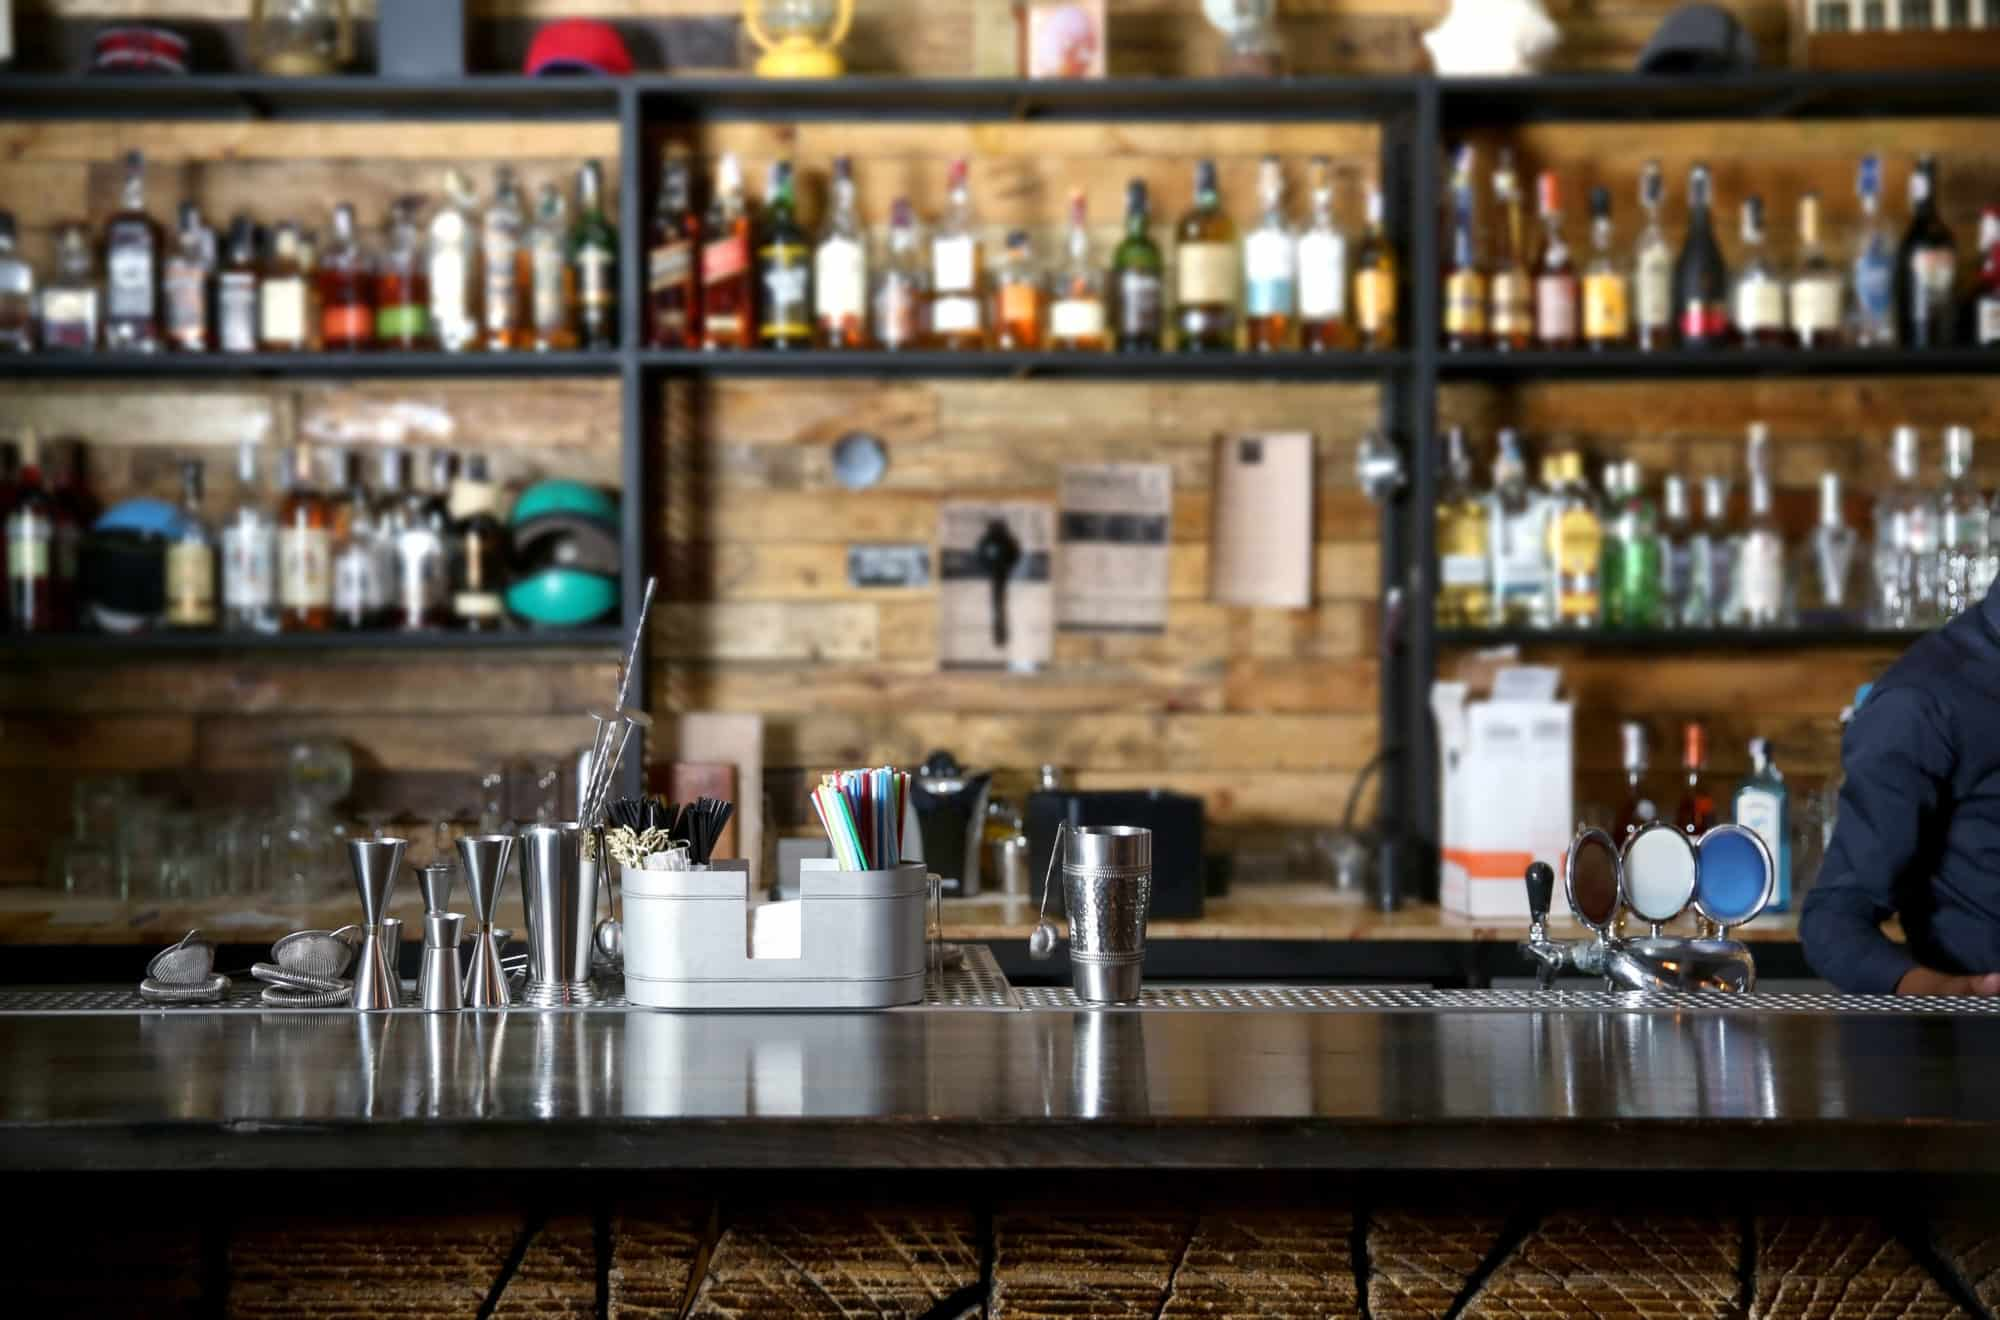 A Behind The Bar Trend Your Business Can't Afford to Miss